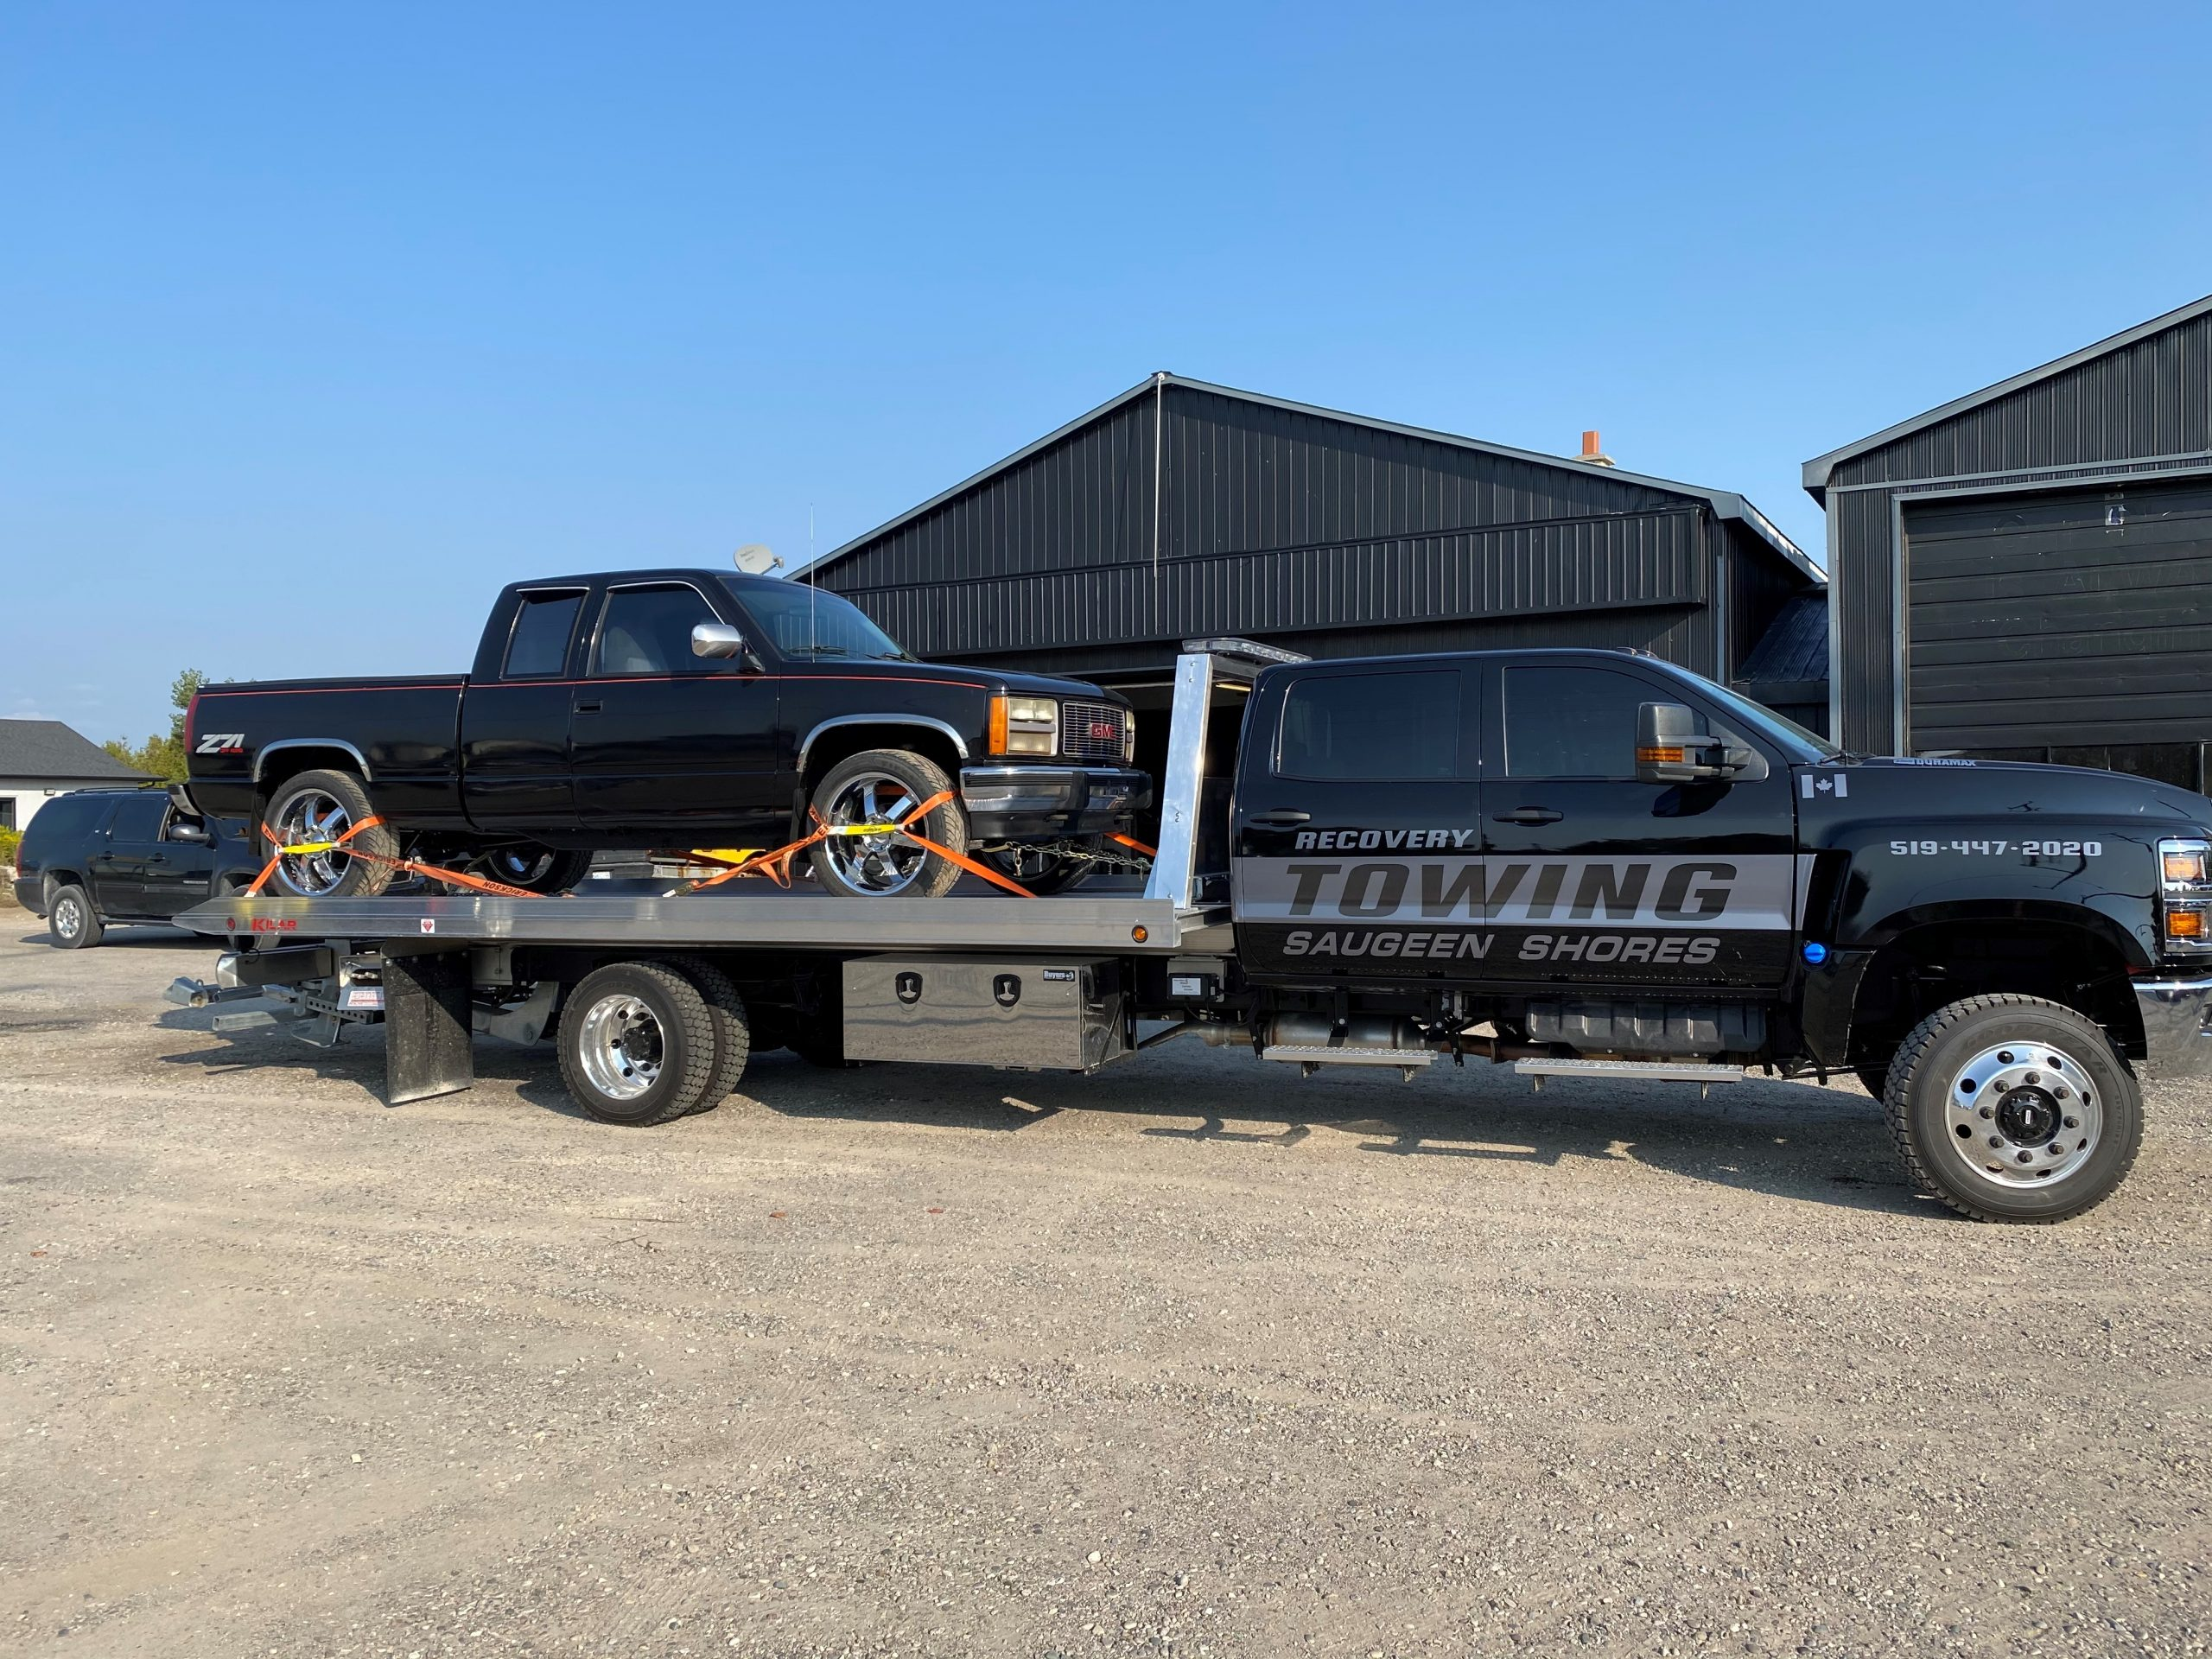 Saugeen Shores Towing